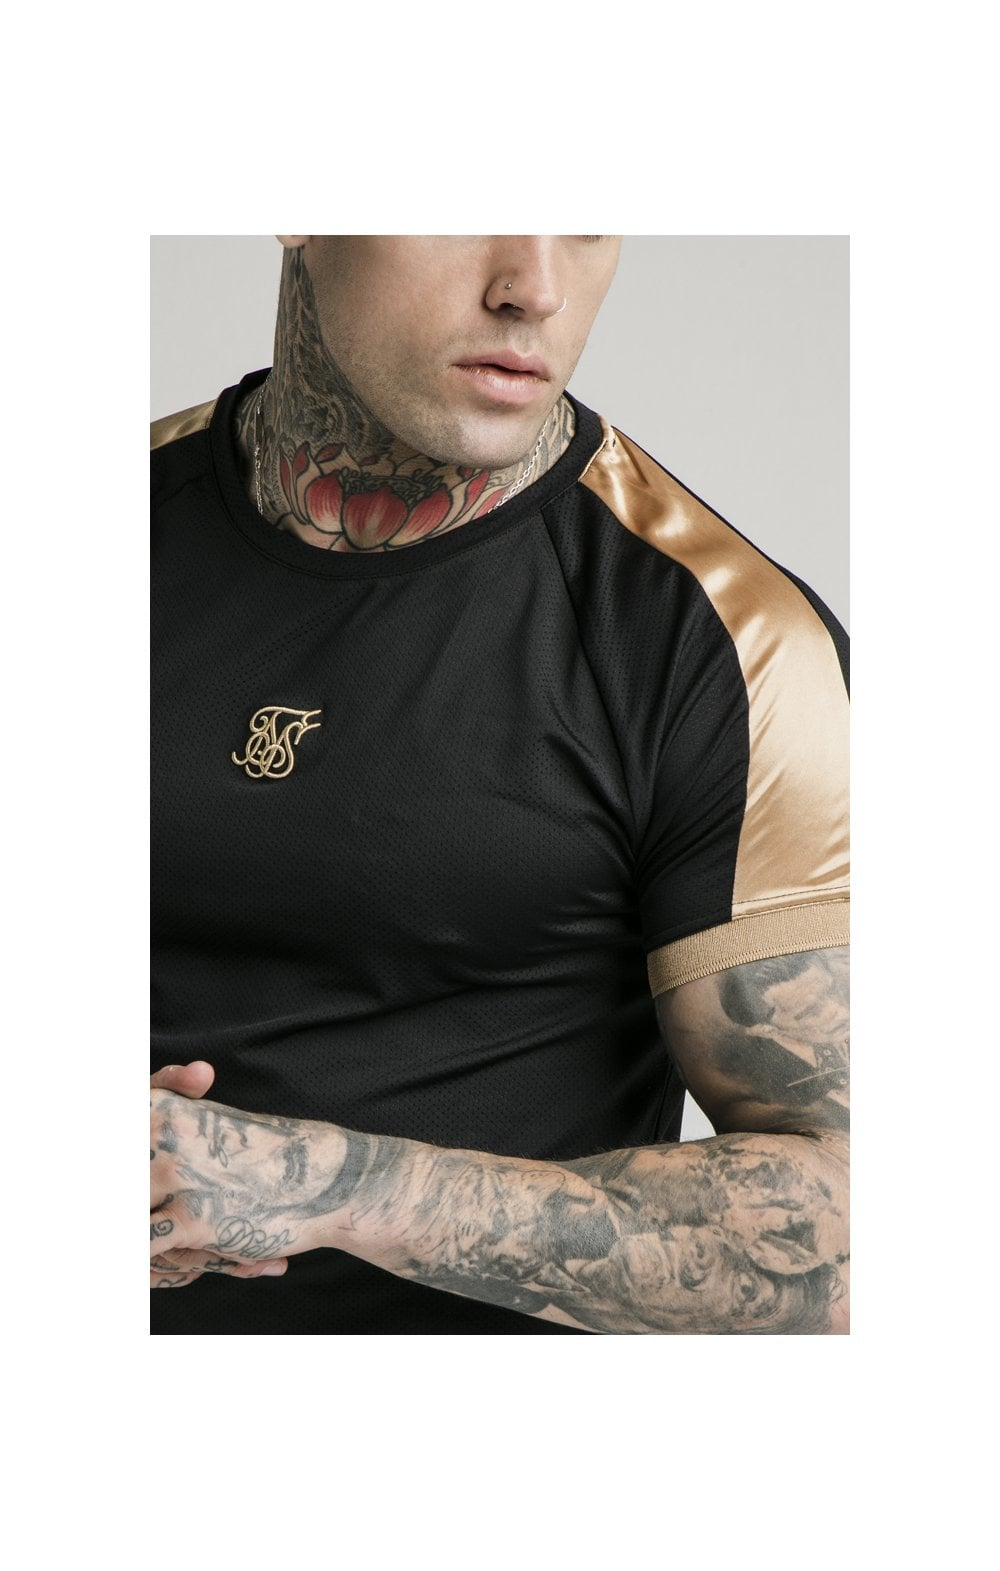 SikSilk S/S Inset Cuff Tech Tee – Black & Gold